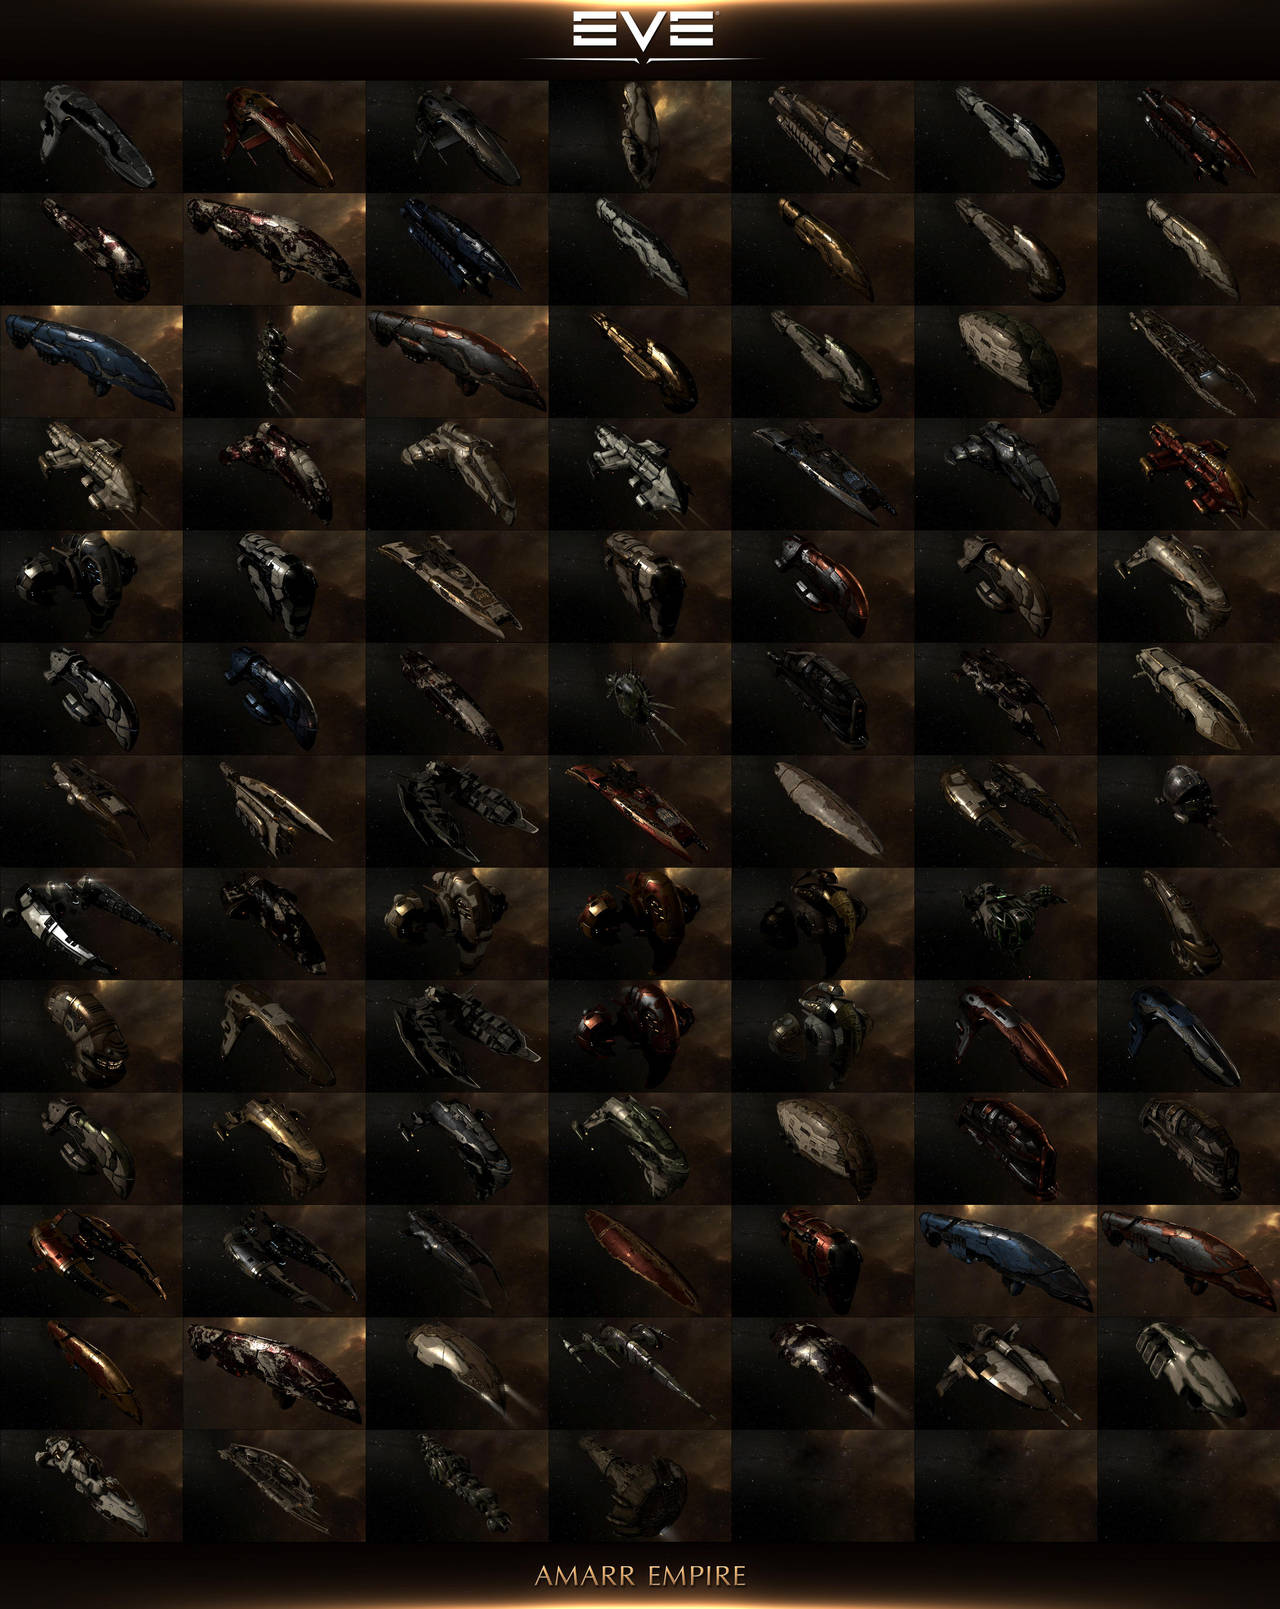 The Ships Of EVE Online 2014: Amarr Empire by AeonOfTime